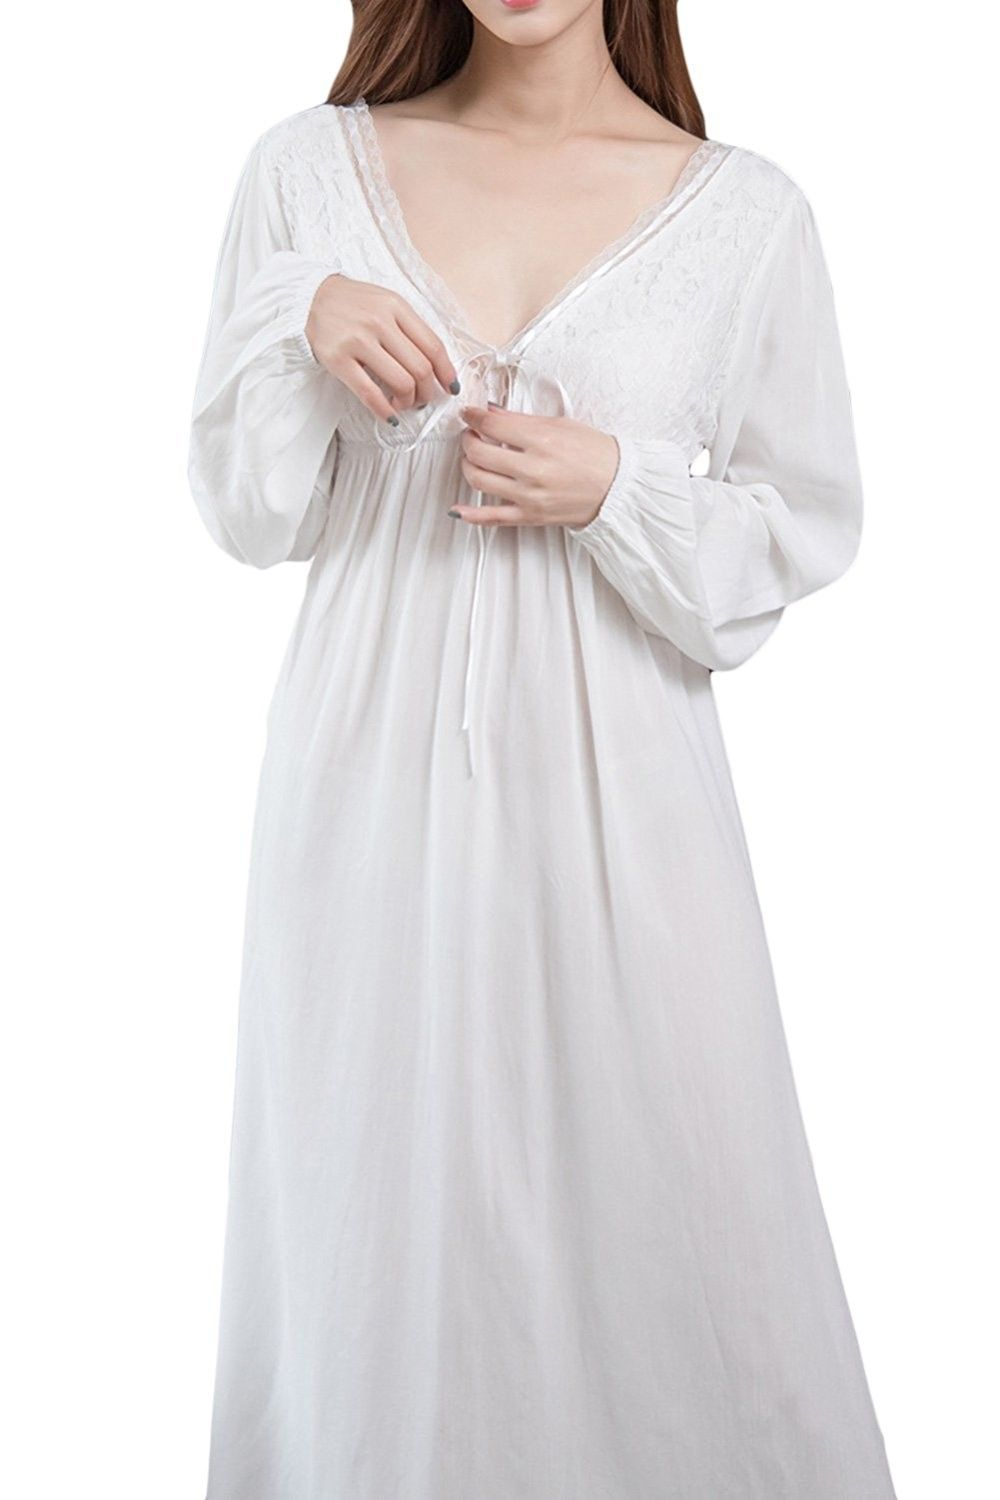 Women s Long Sleeve Vintage Lace V Neck Nightgown Cotton Sleepwear - White  - CF187YZWXNI d375f3747